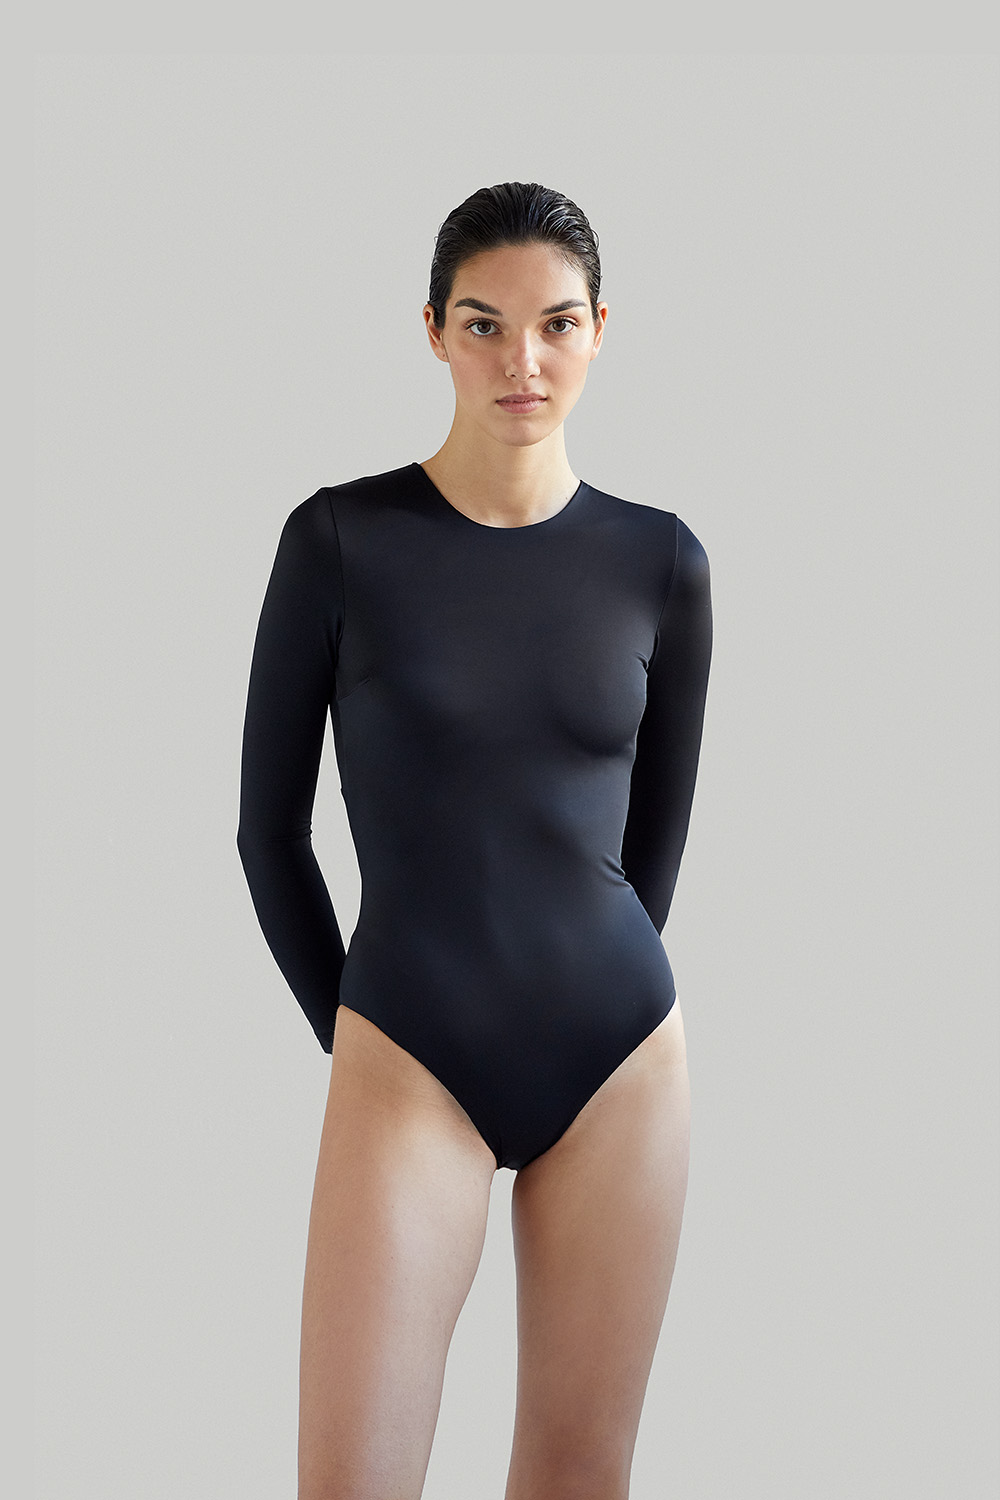 NOW_THEN Eugenie bodysuit black